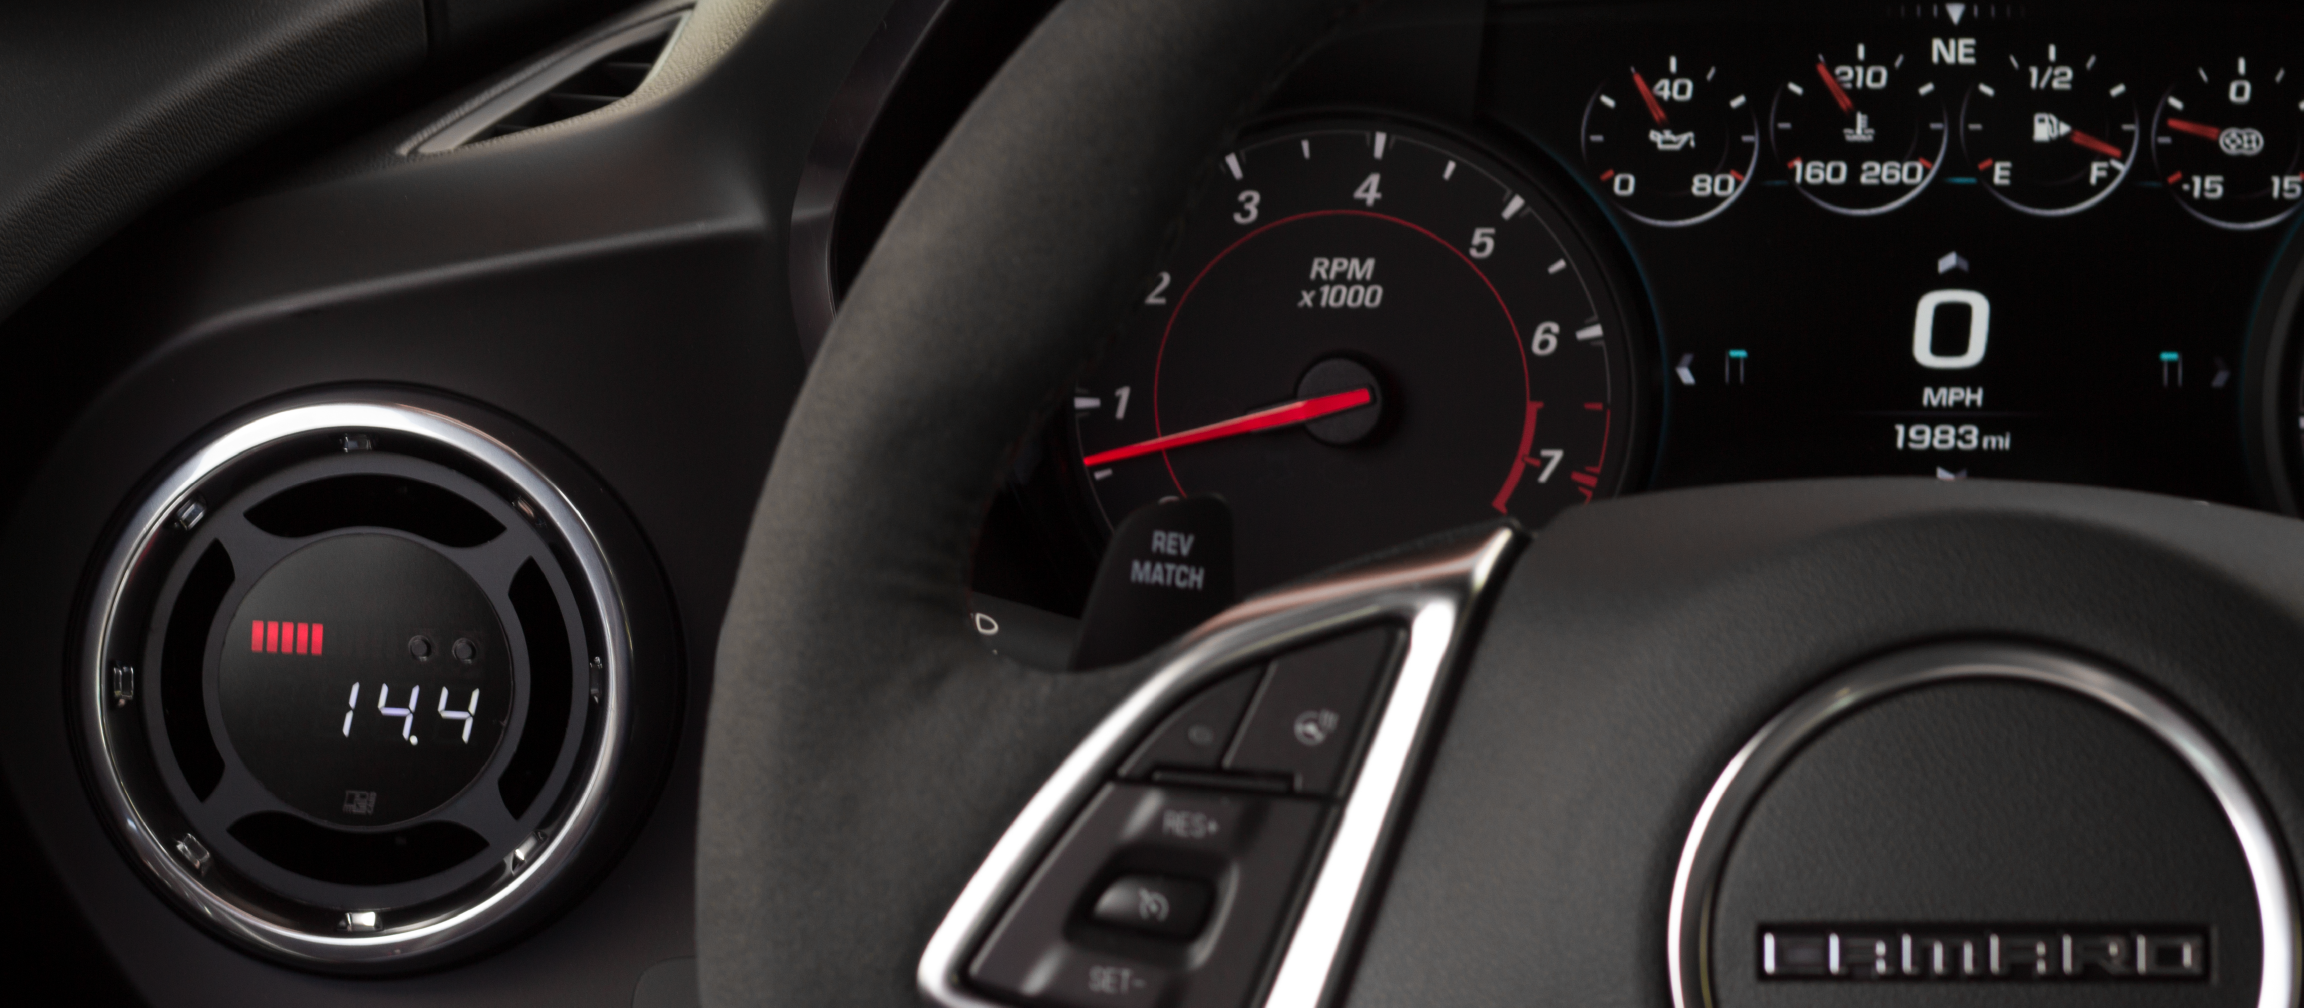 P3 Gauges - Custom Integrated Multi-Function Gauges